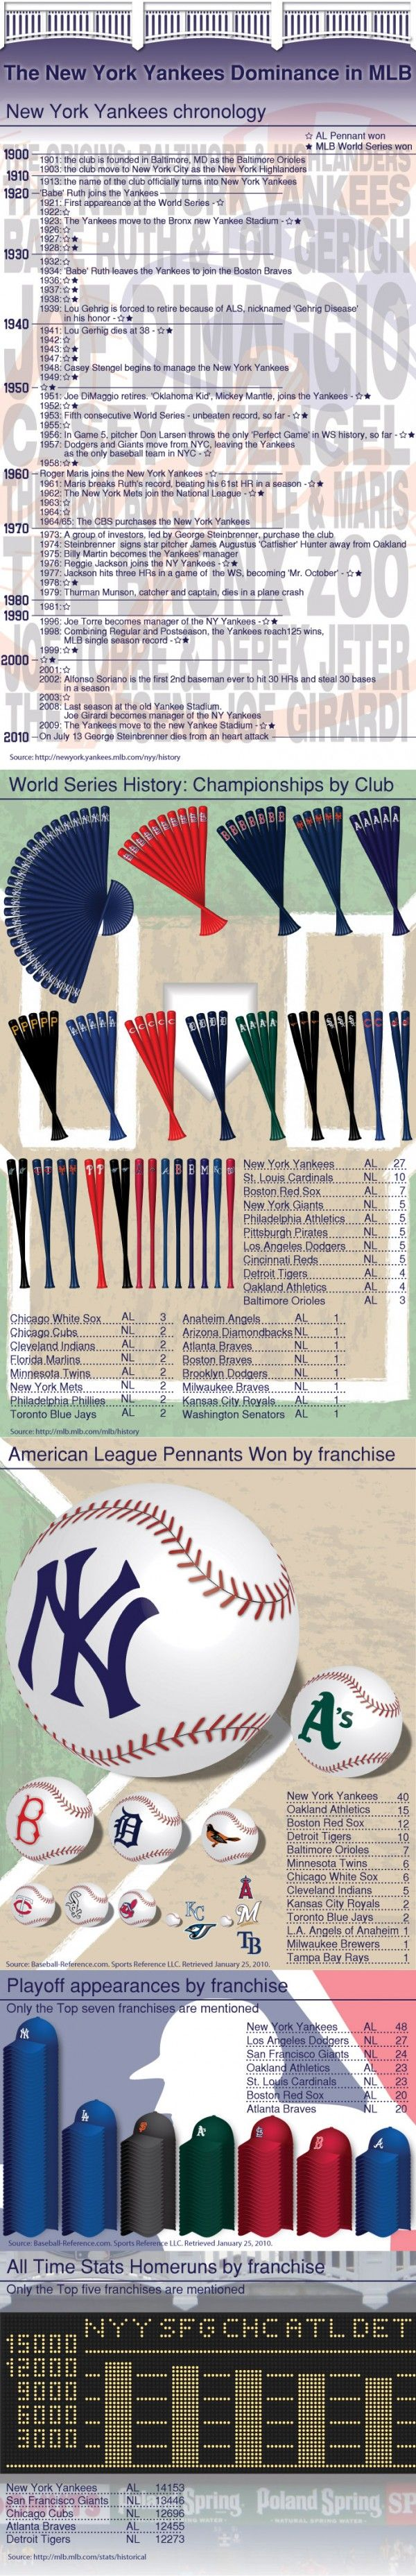 New York Yankees Dominance in the MLB Infographic.  Whoever put this together, GREAT WORK !!!!